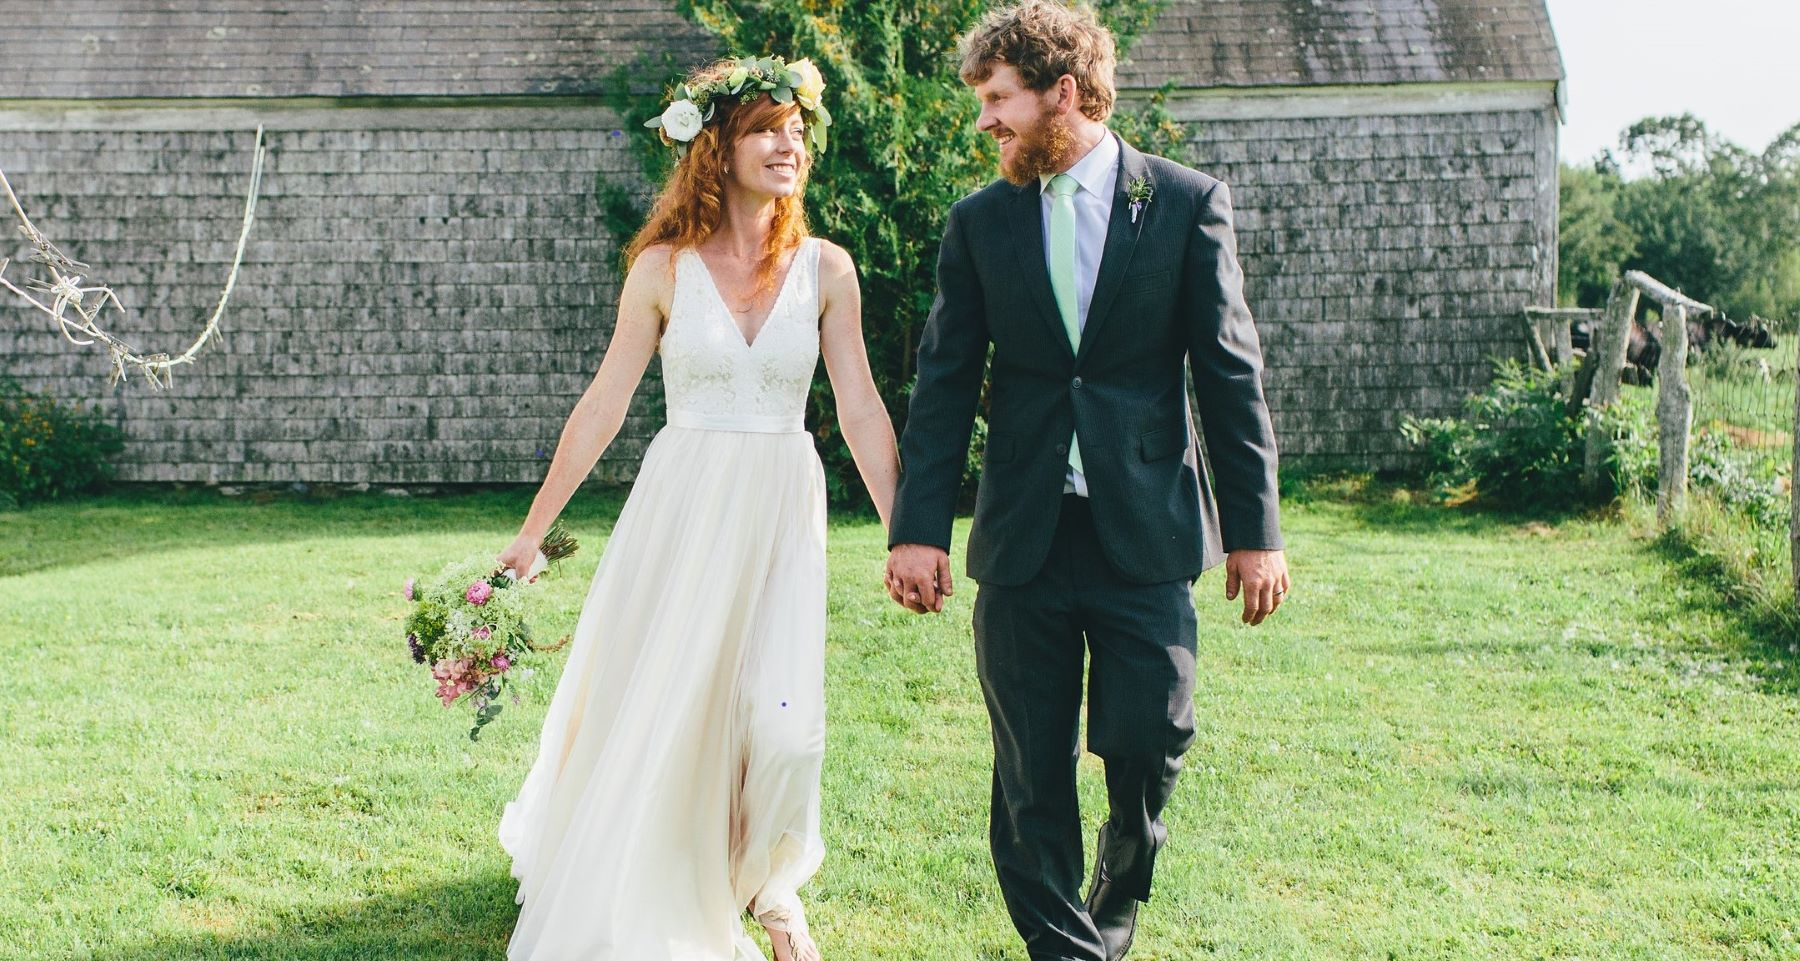 Alexis and Conor MacDonald held their wedding reception at their organic farm in Maine.